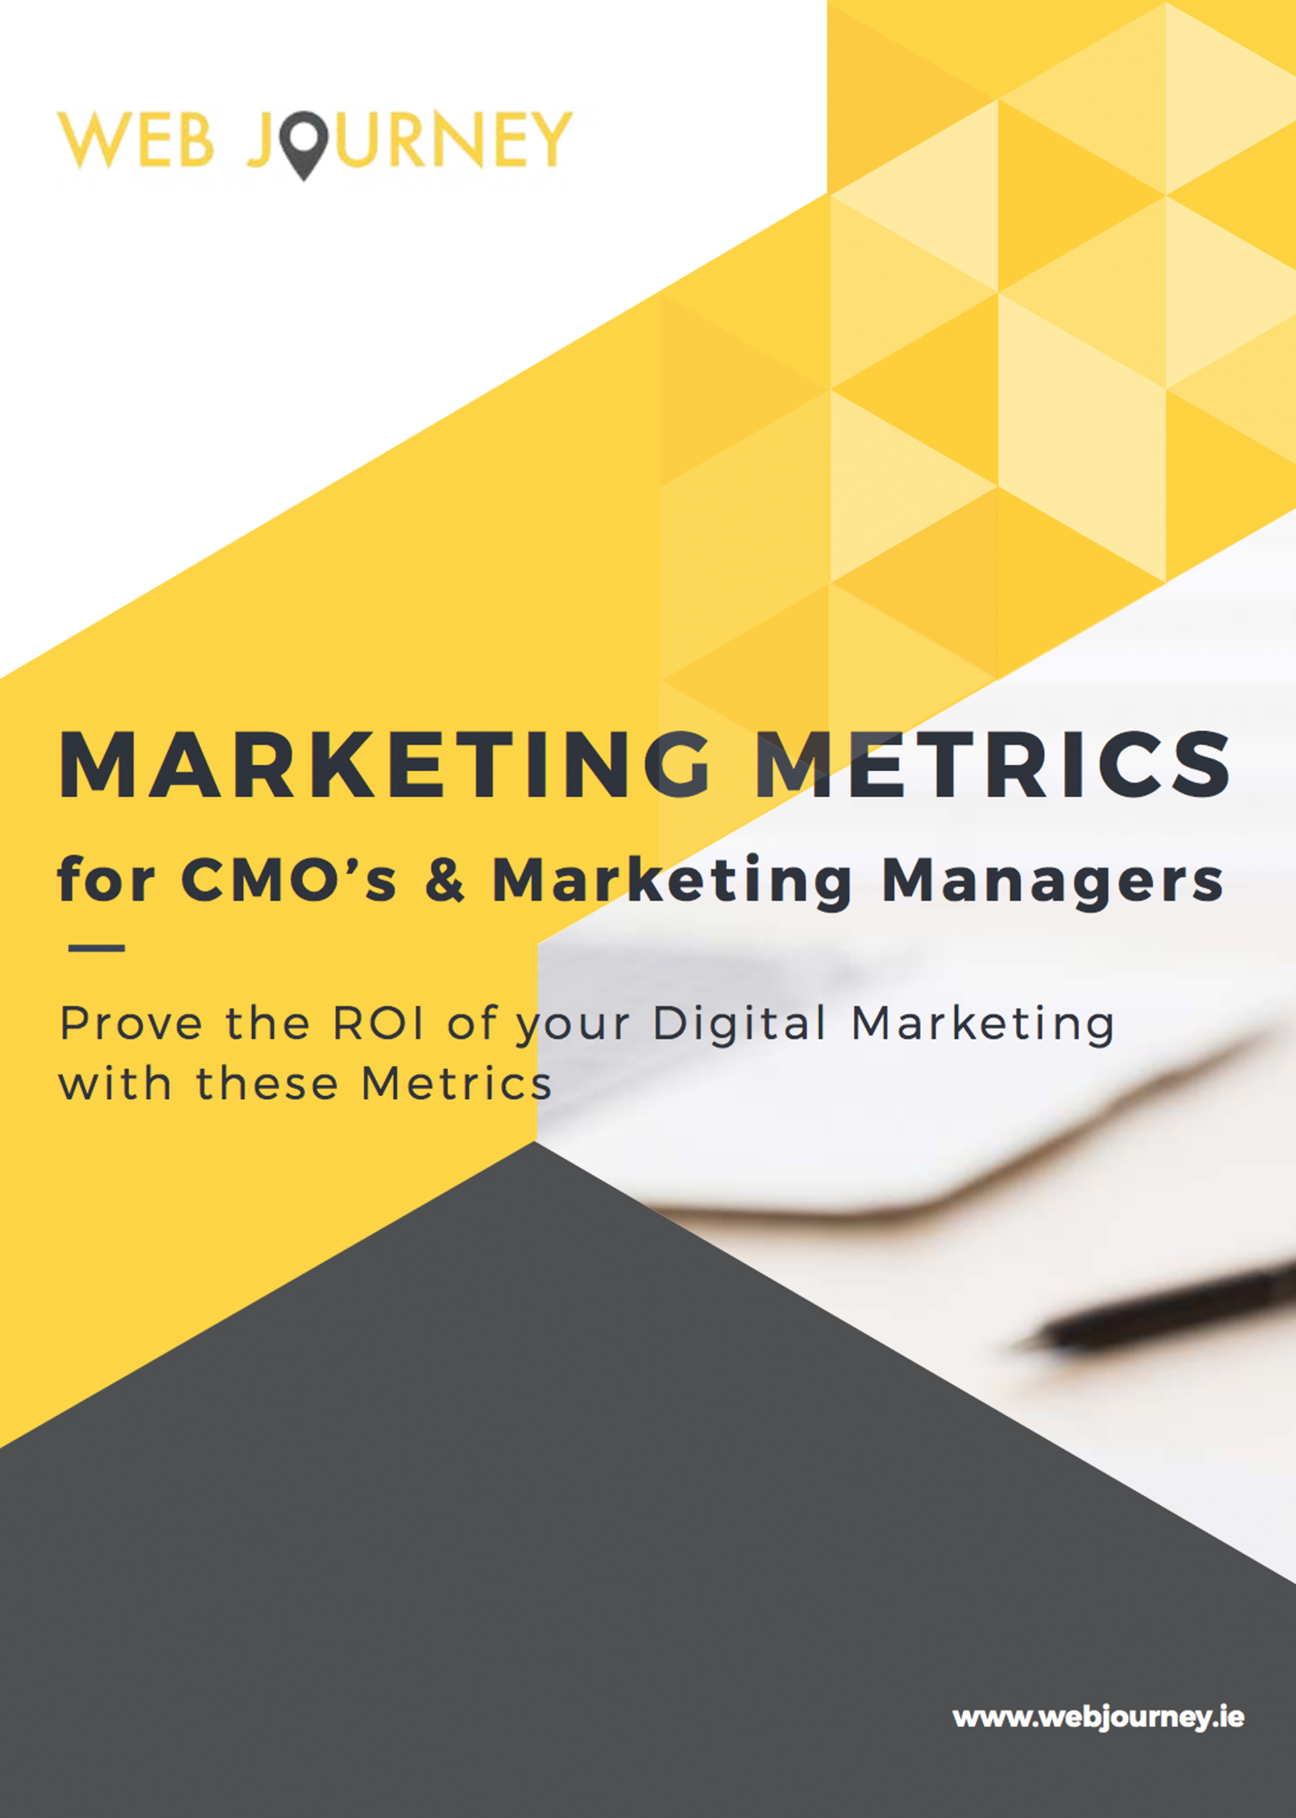 Marketing-Metrics-for-CMOs-and-Marketing-Managers-LP-Image-Feb-2018.png